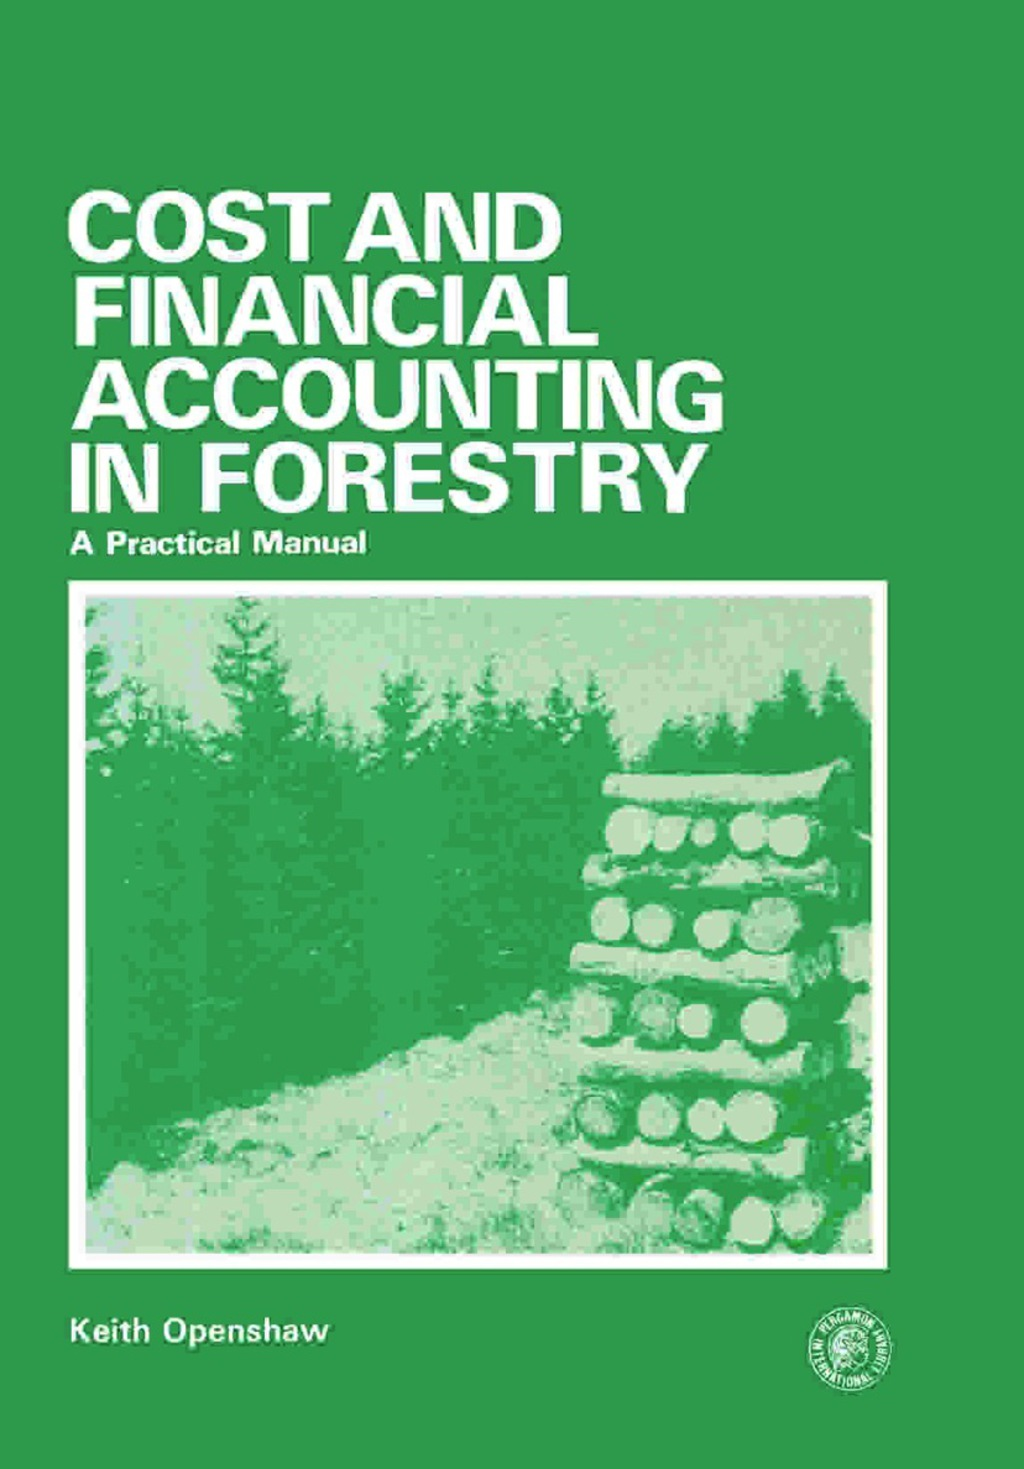 Cost and Financial Accounting in Forestry (eBook)